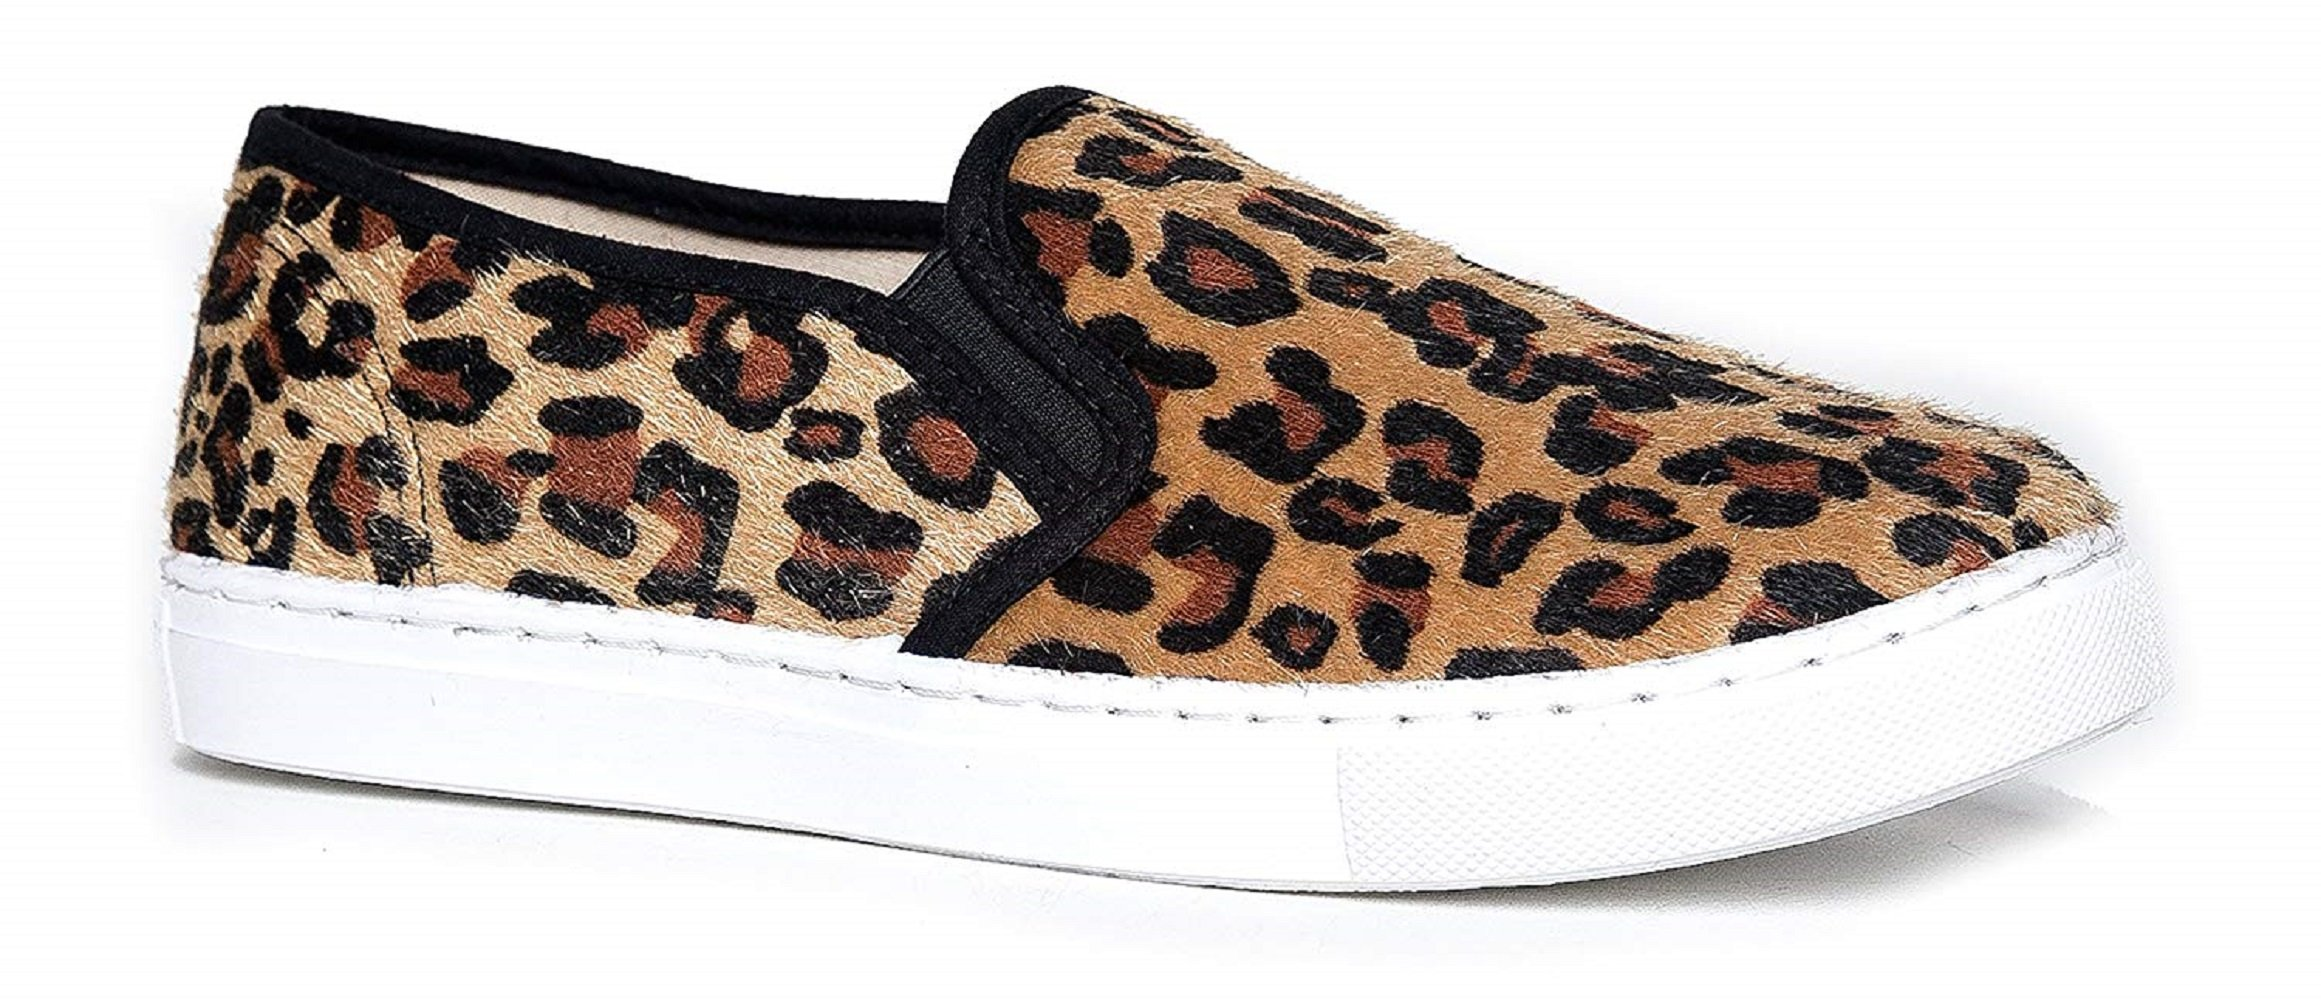 Women's Slip On Quilted Fashion Sneakers Slick Ligh Weight Comfort Casual Sport Athletic Shoes Leopard 9